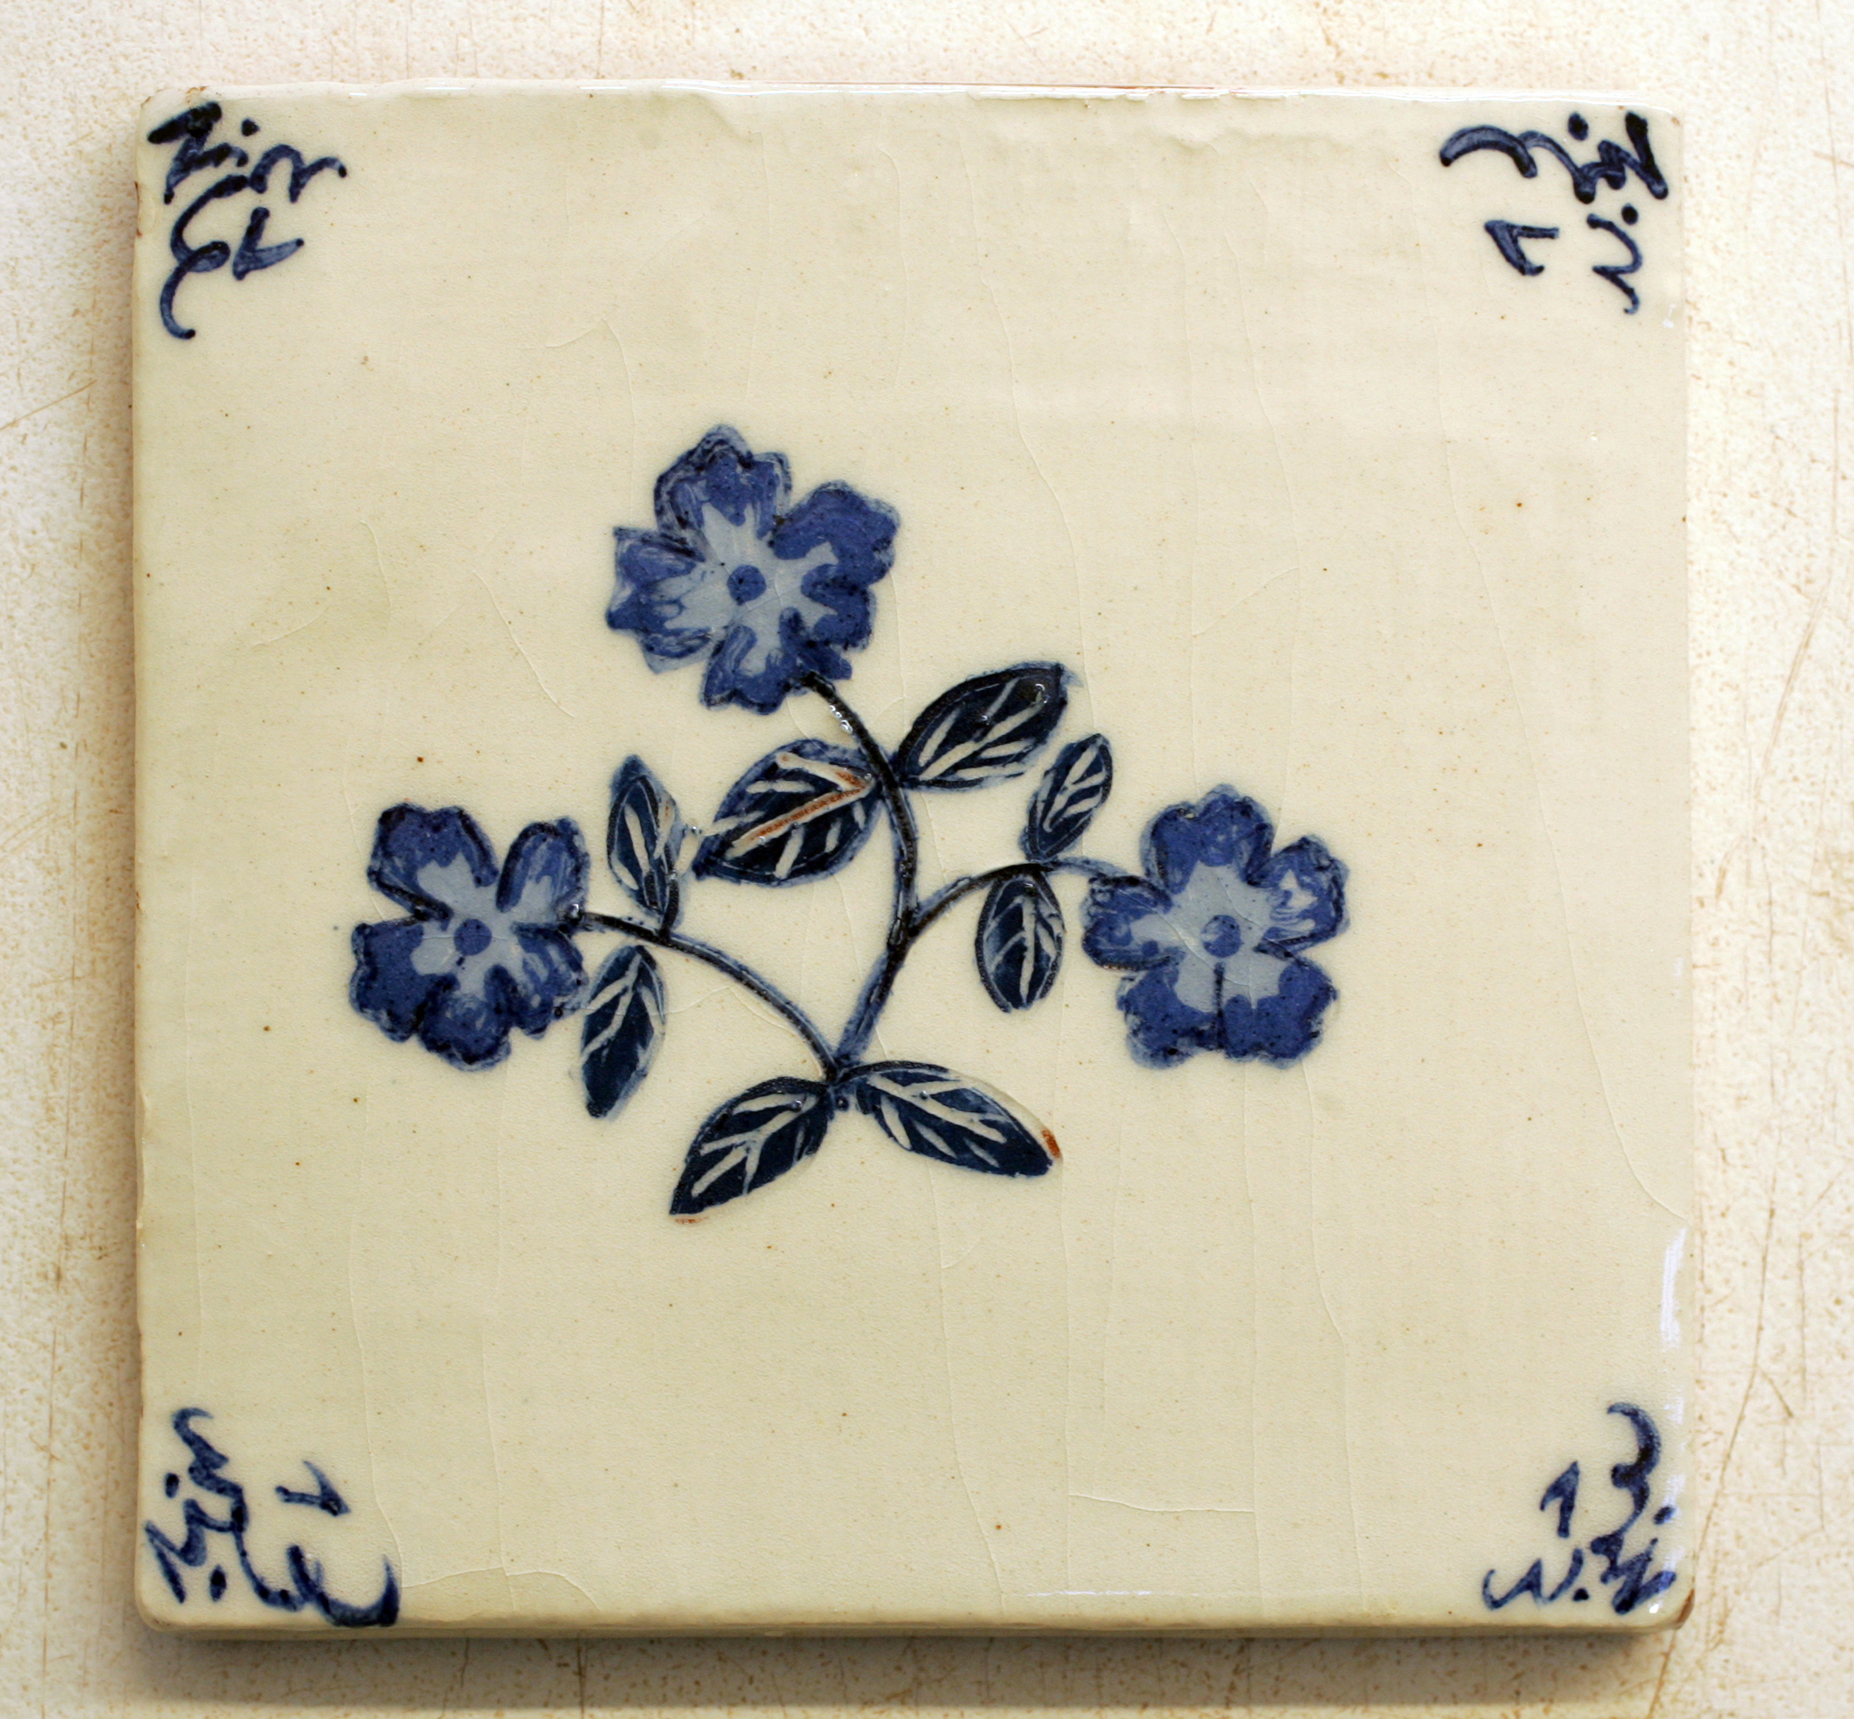 """Our own """" Pops"""" squiggle corner - """"Pops"""" was the nick-name given to the Flanders town of Poperinge in World War I, by the many allied soldiers who enjoyed there a brief respite from the trenches. Much later, Ann saw an old delft tile with an unusual corner design in an antique shop window in Poperinge, and noted it in her sketch book. Our Delft corner tiles are now one of our most popular designs."""